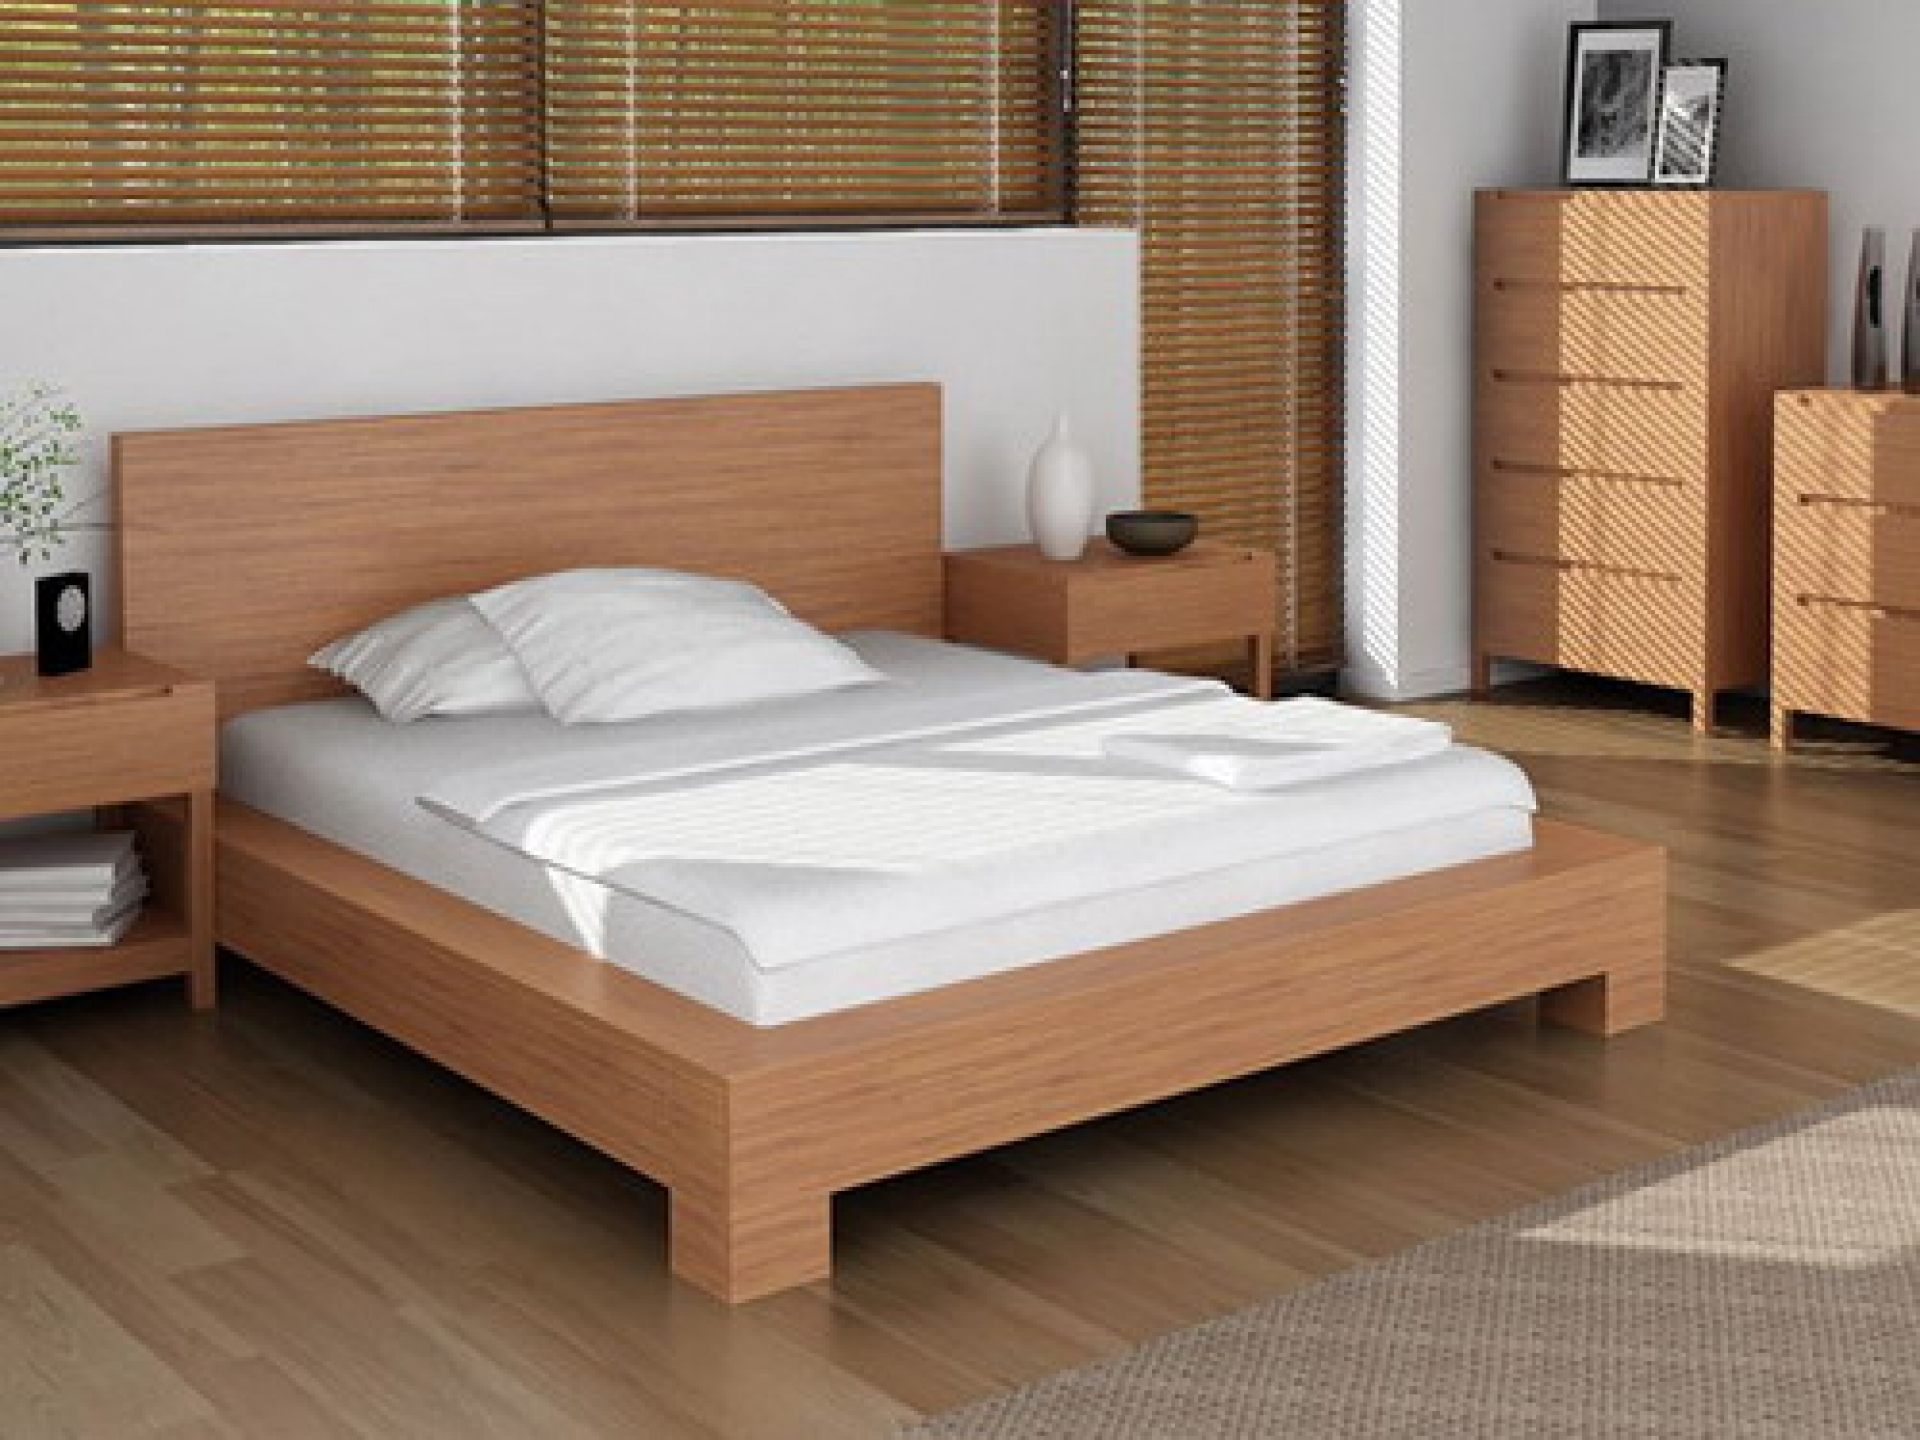 wood bed frames headboards loft bed frame with headboard for modern bedroom white pillows white